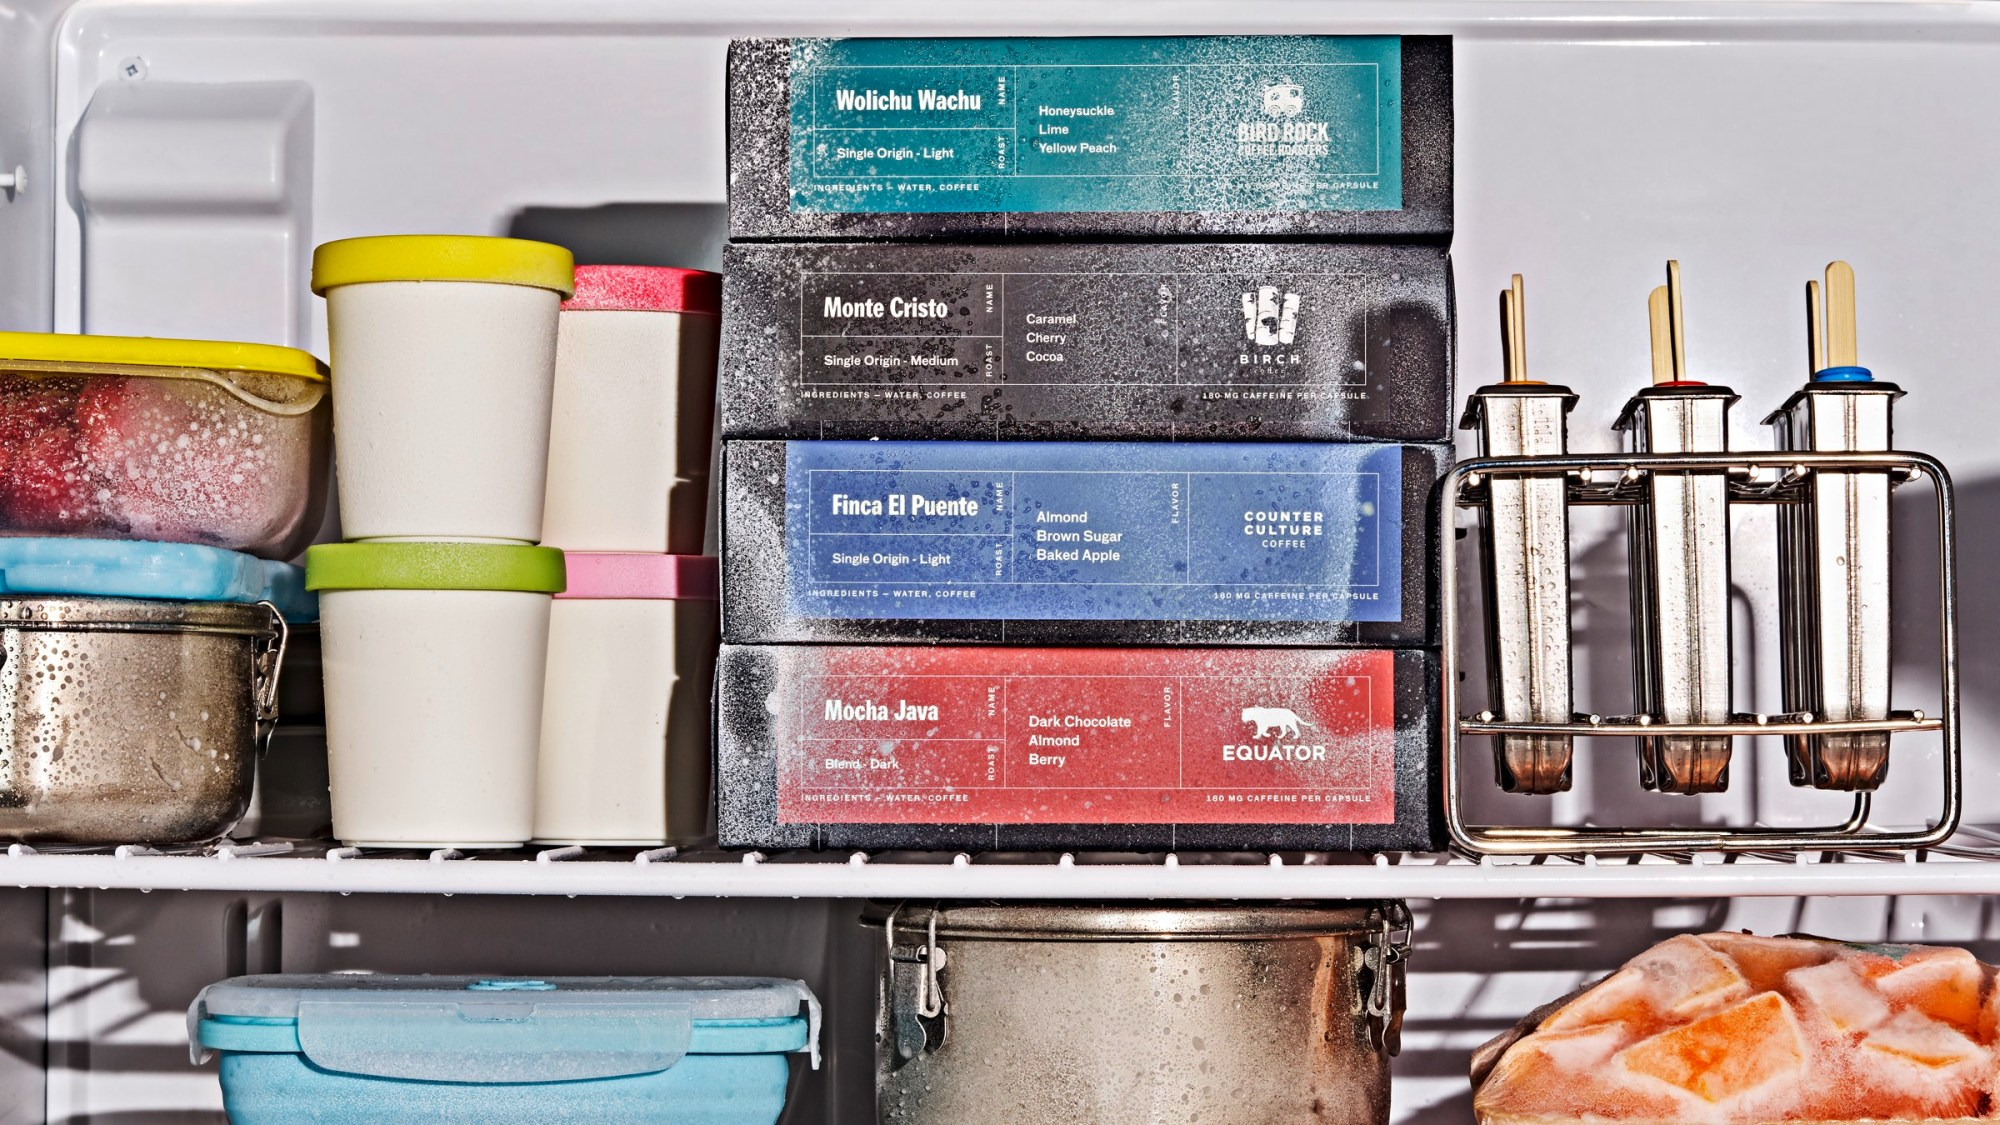 Cometeer boxes in the freezer